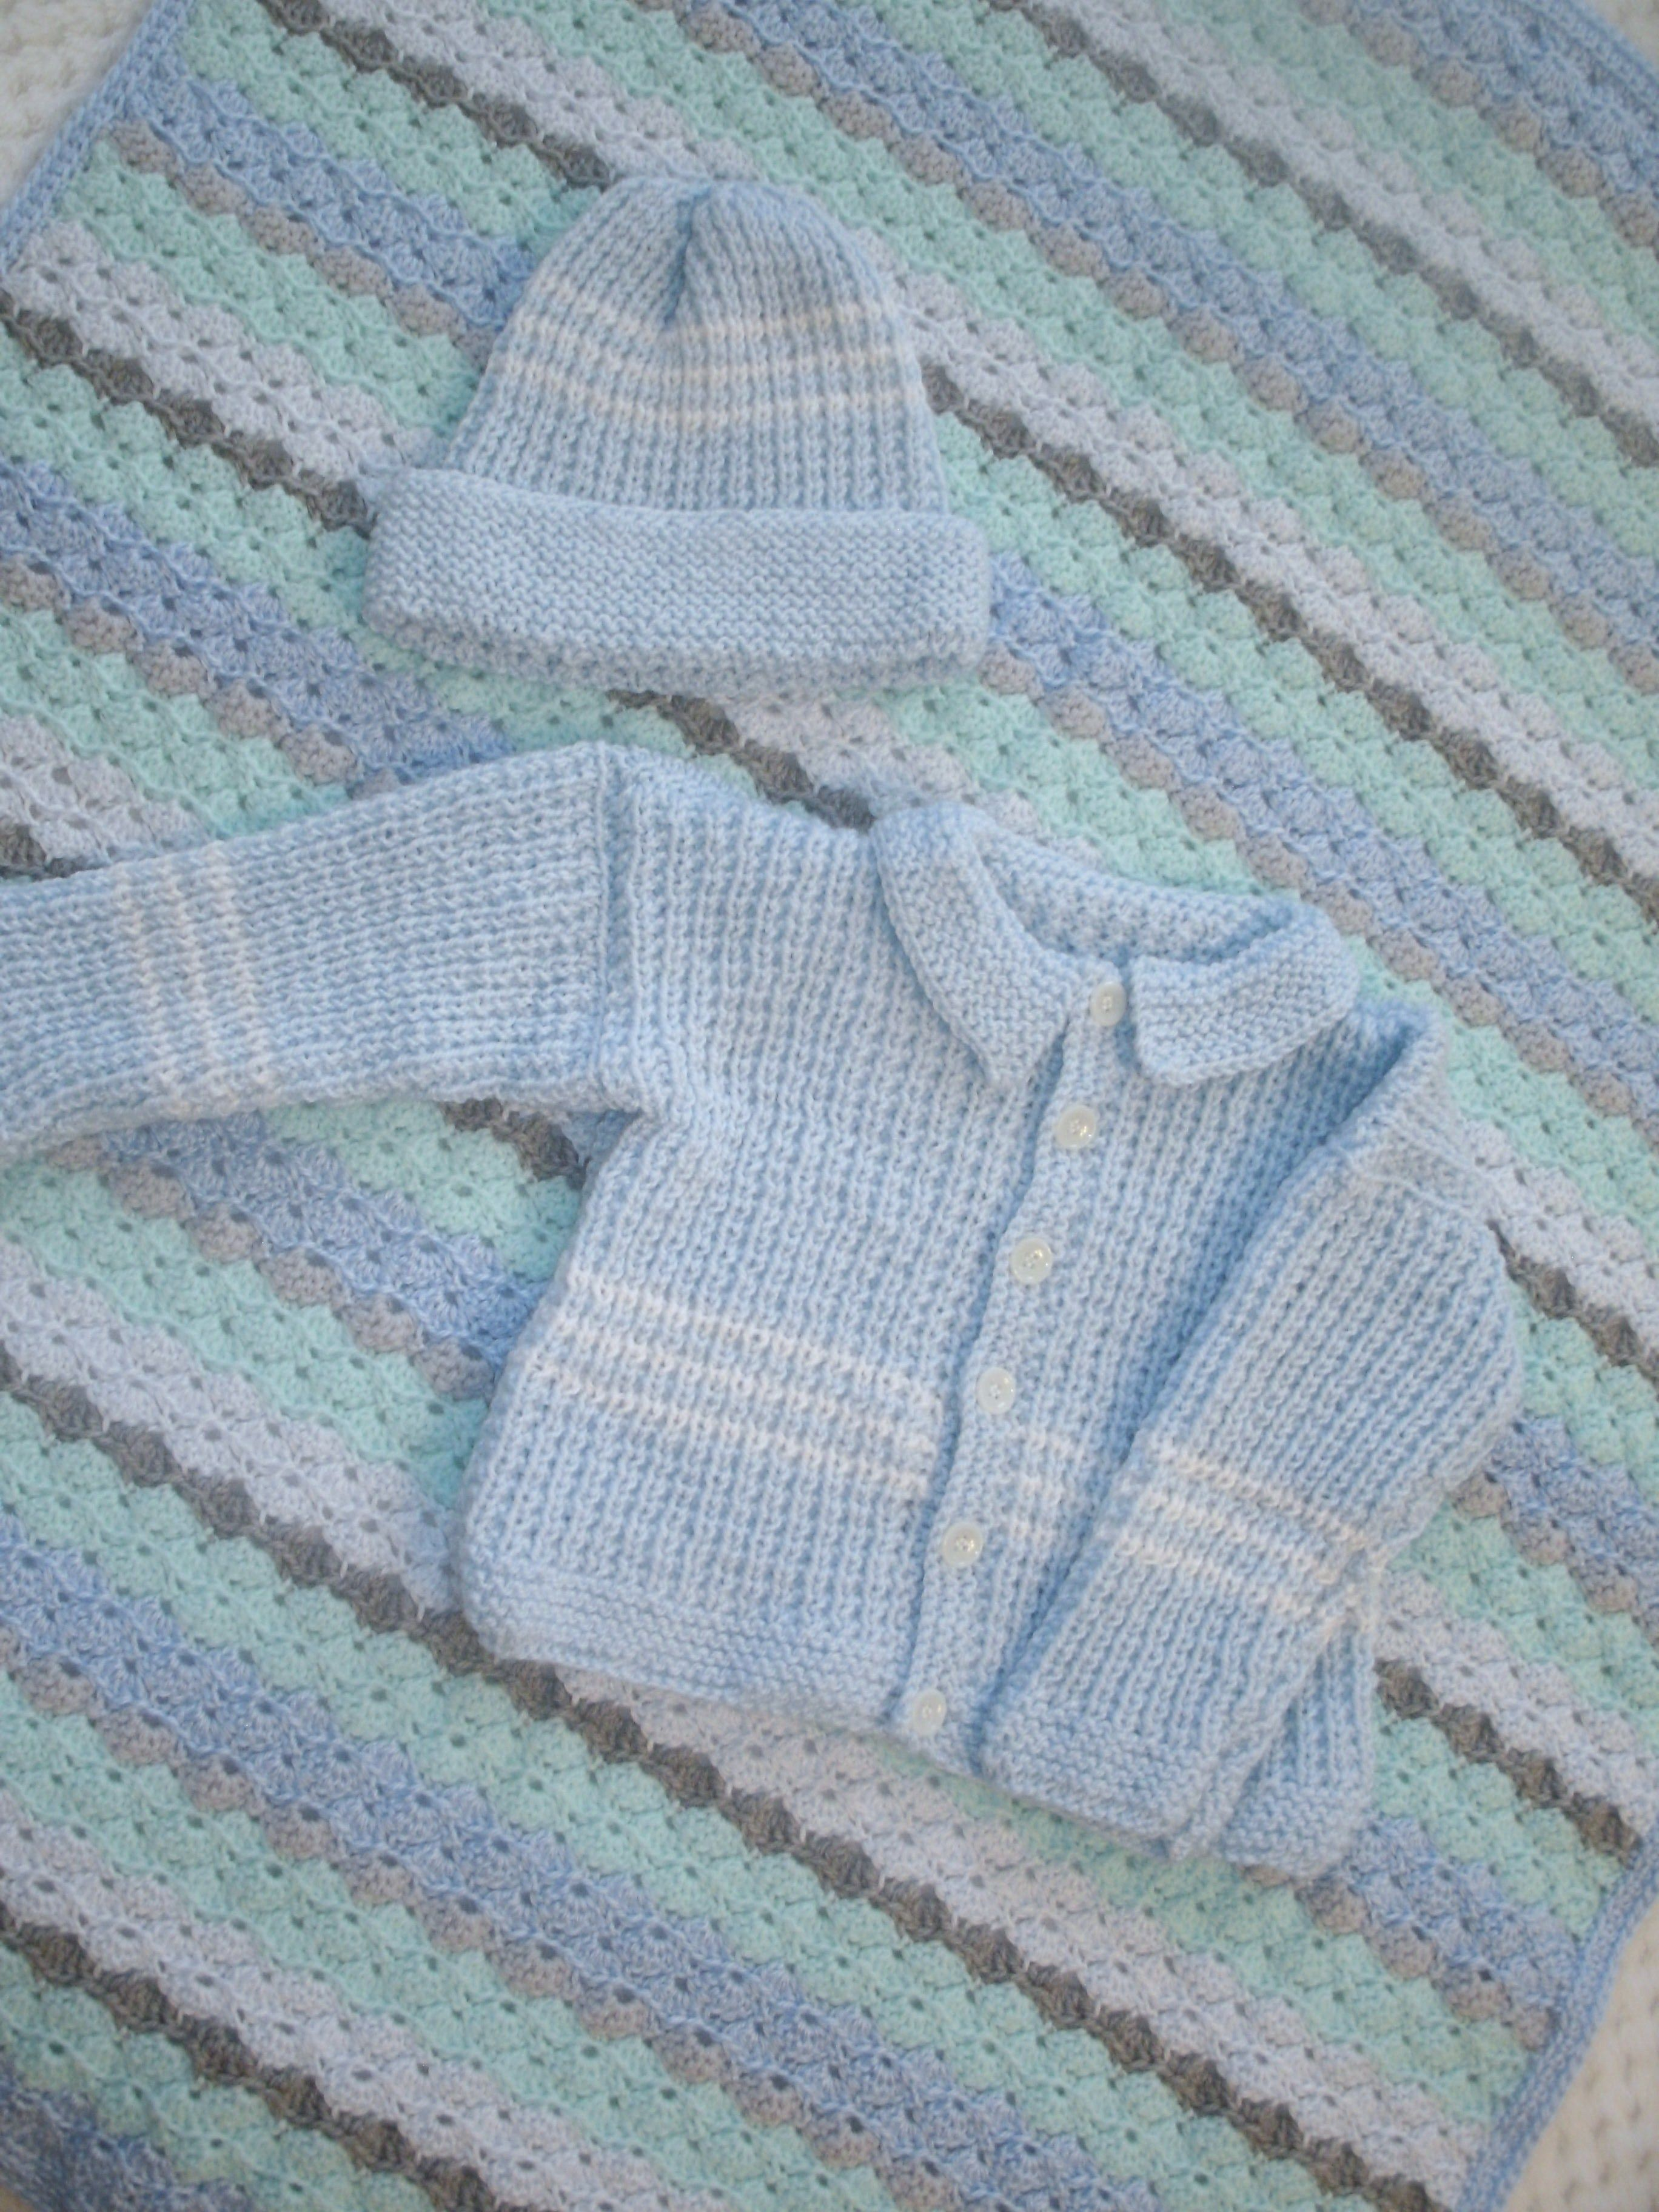 73e68be3ae09 Baby Sweater and Hat are Hand Knit in Light Blue. Little White Stripes can  be seen on the body, sleeves and hat. This set is size 9 months and is  completely ...